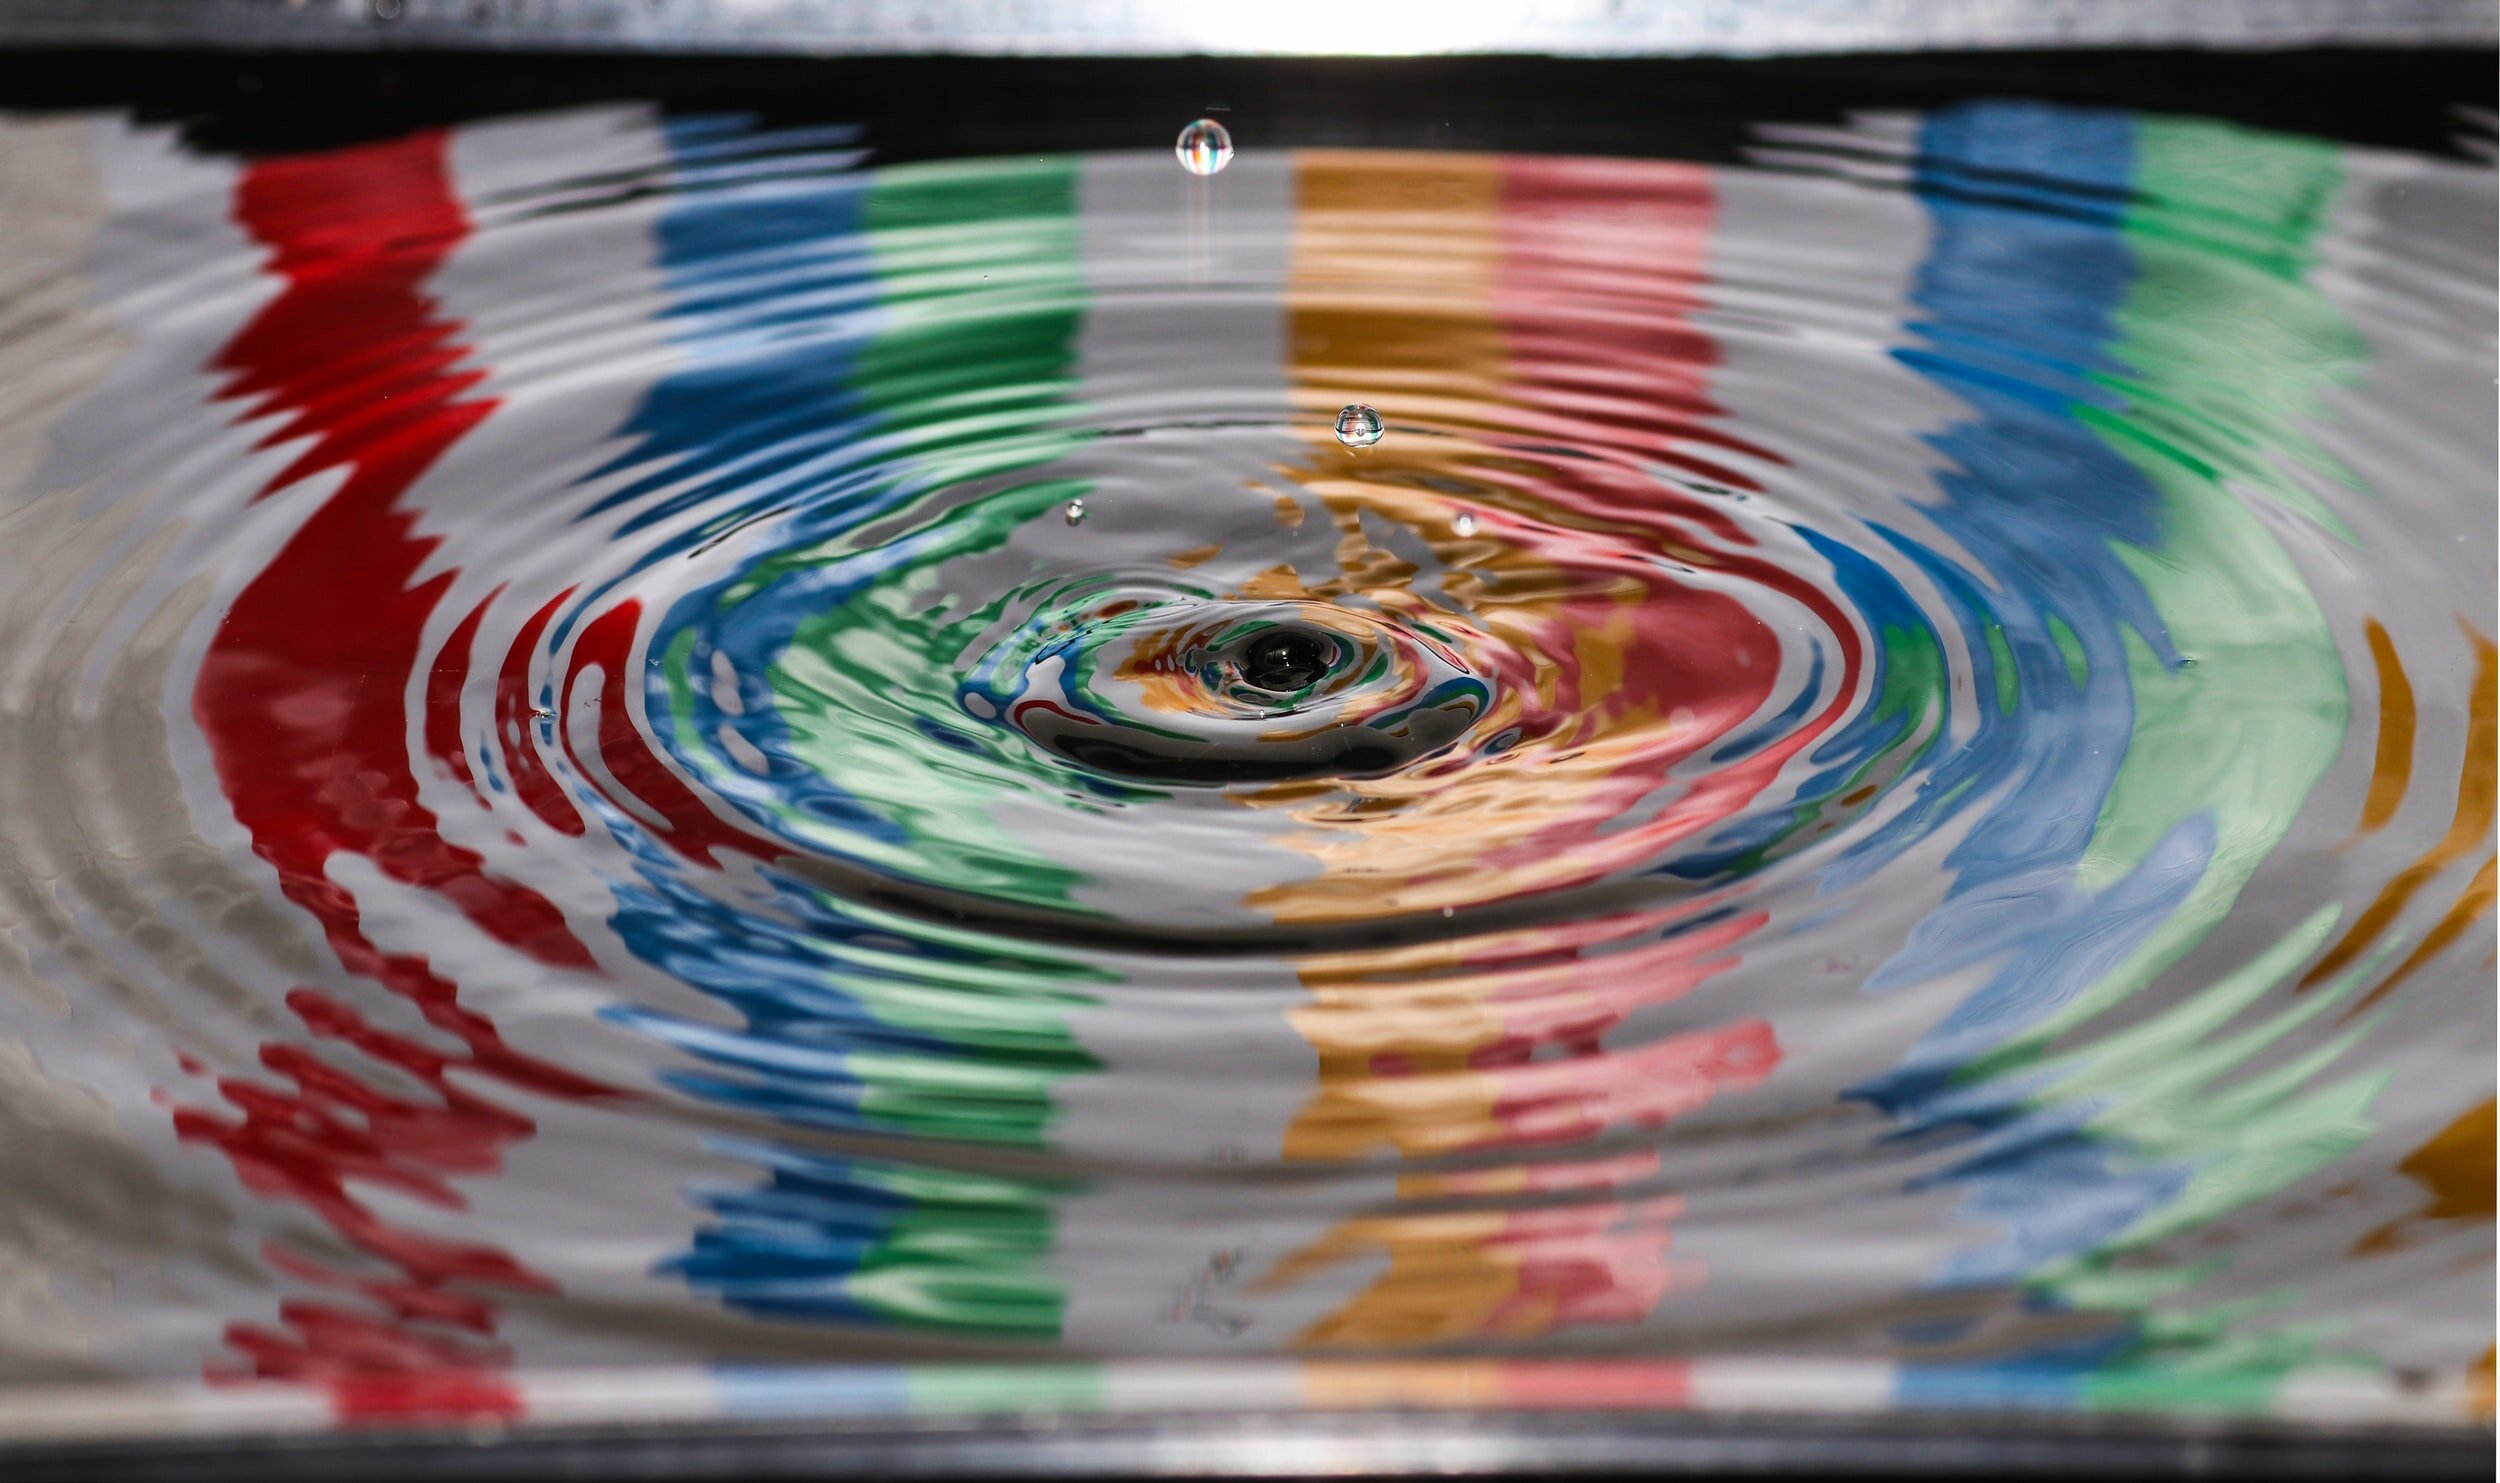 ripple effect of a drop of water on top of a puddle of water (reflection of colors)